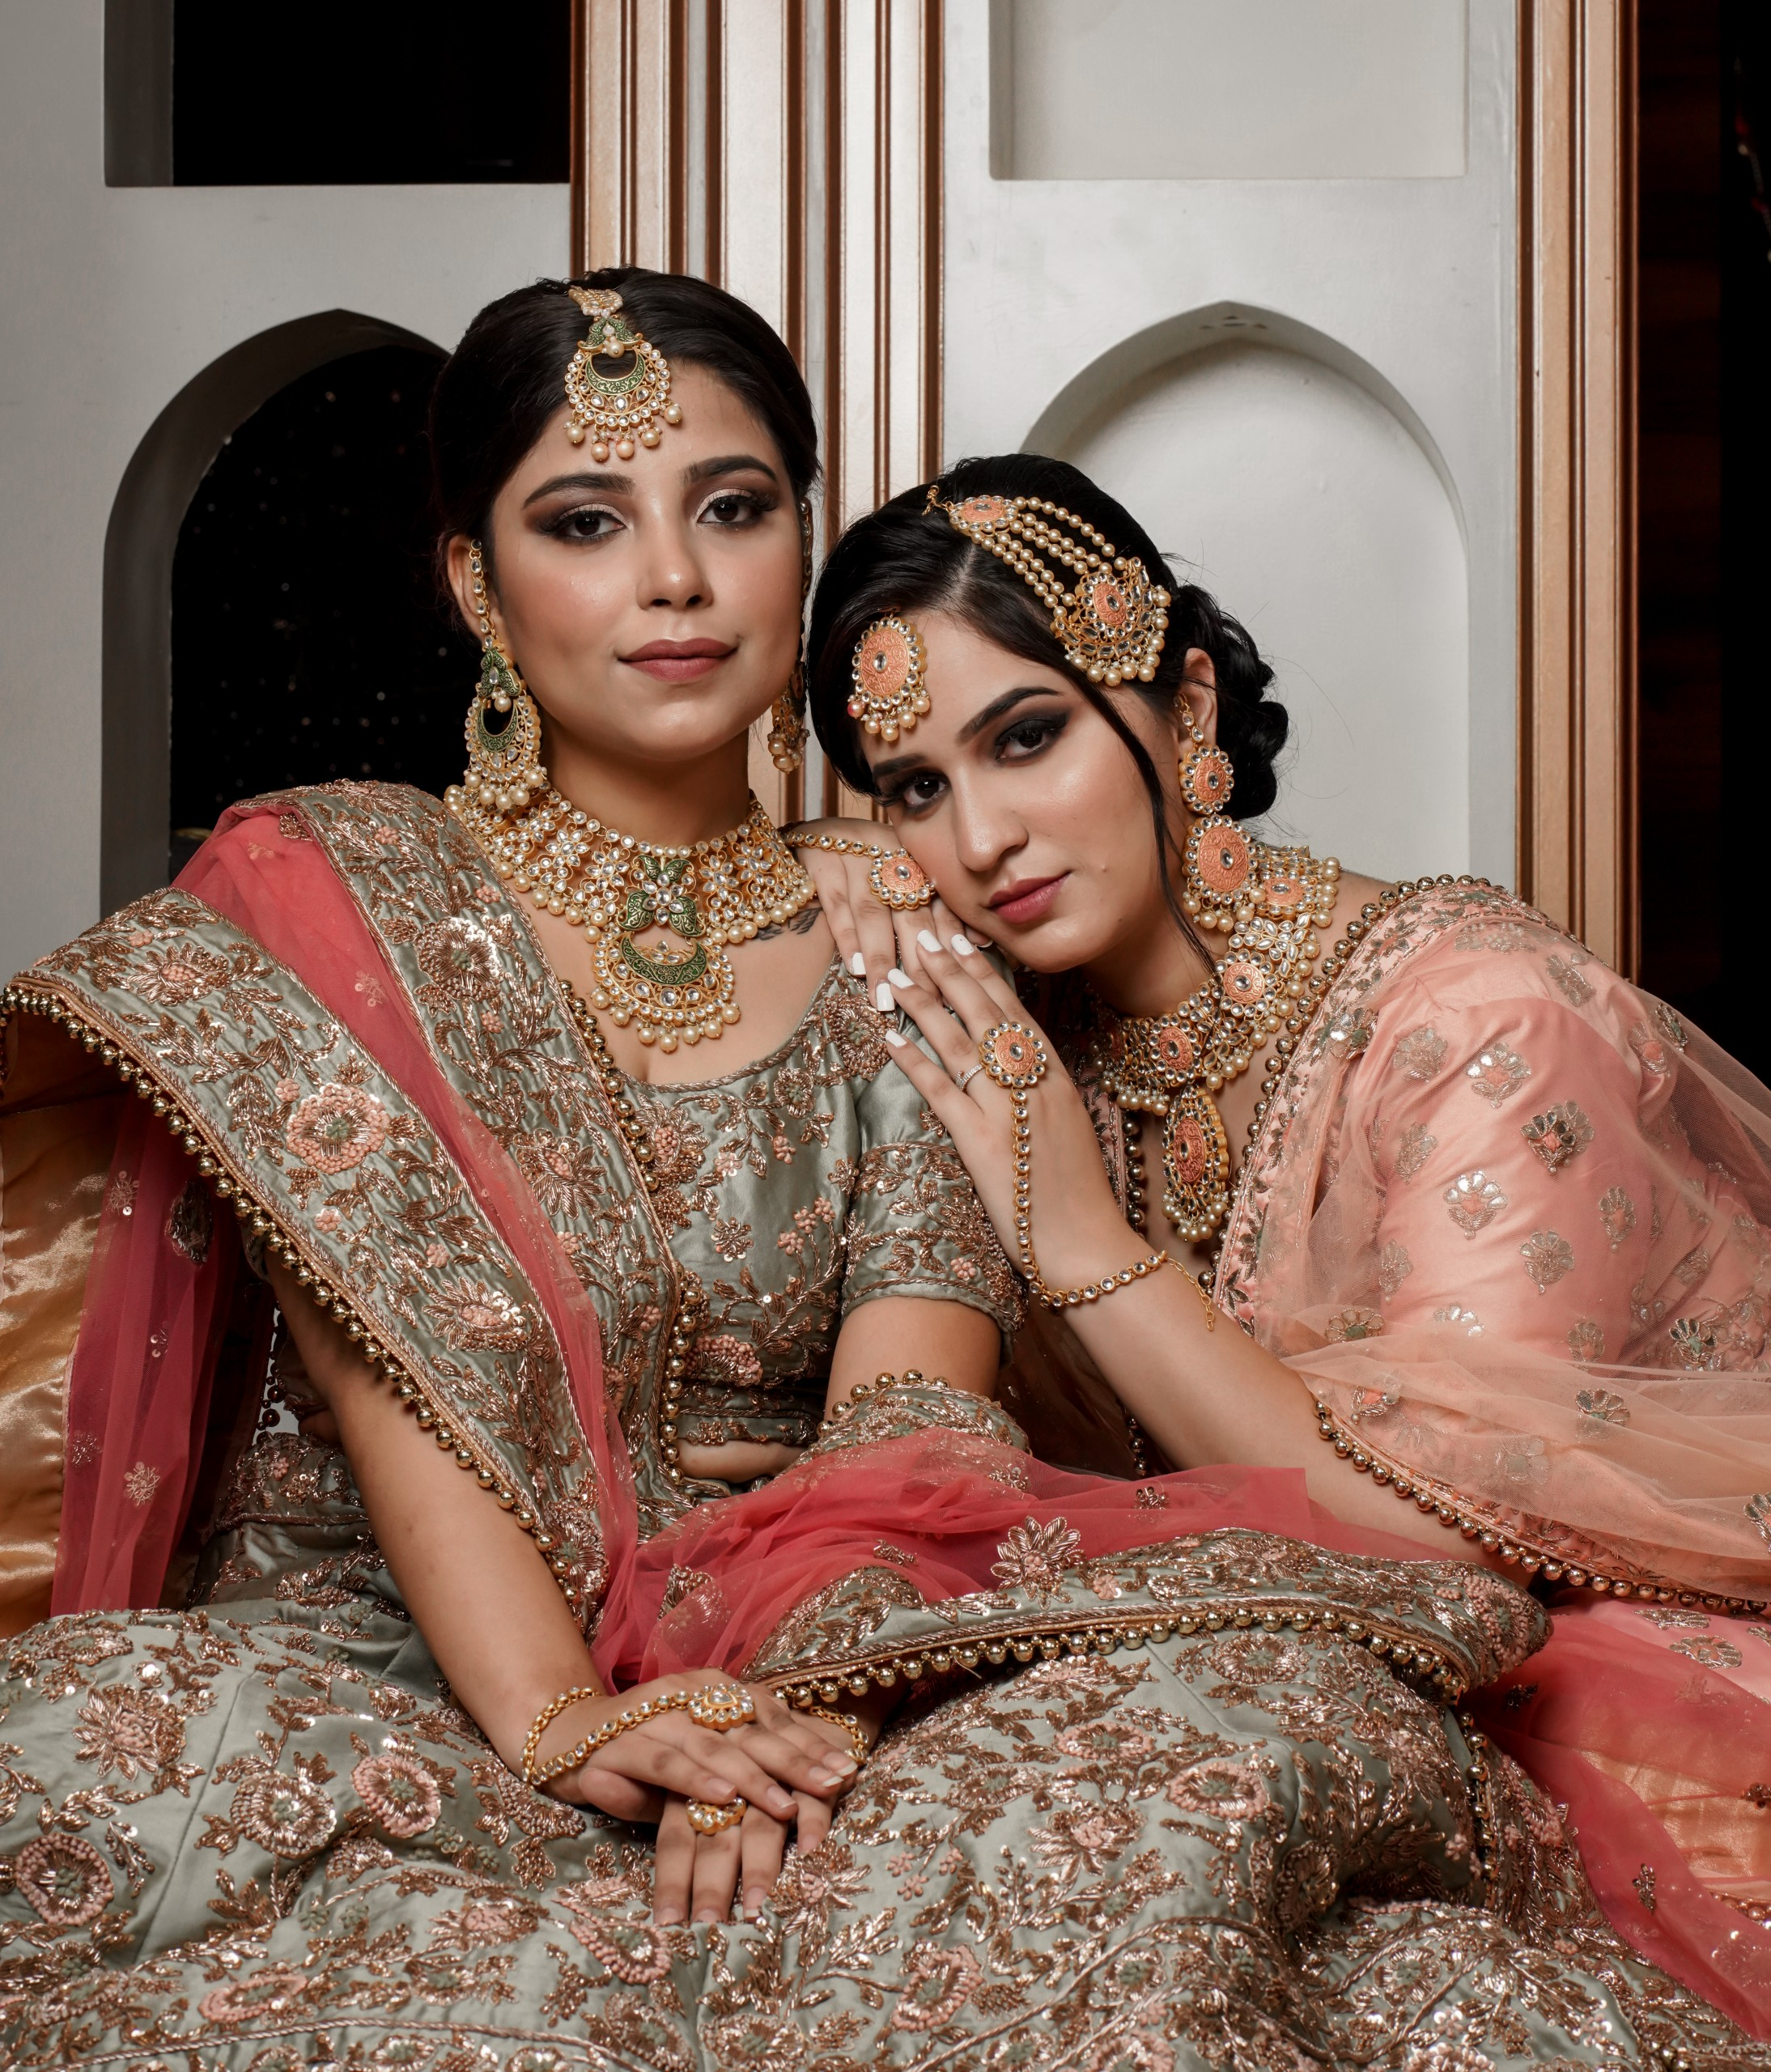 Indian Brides on Traditional Dresses